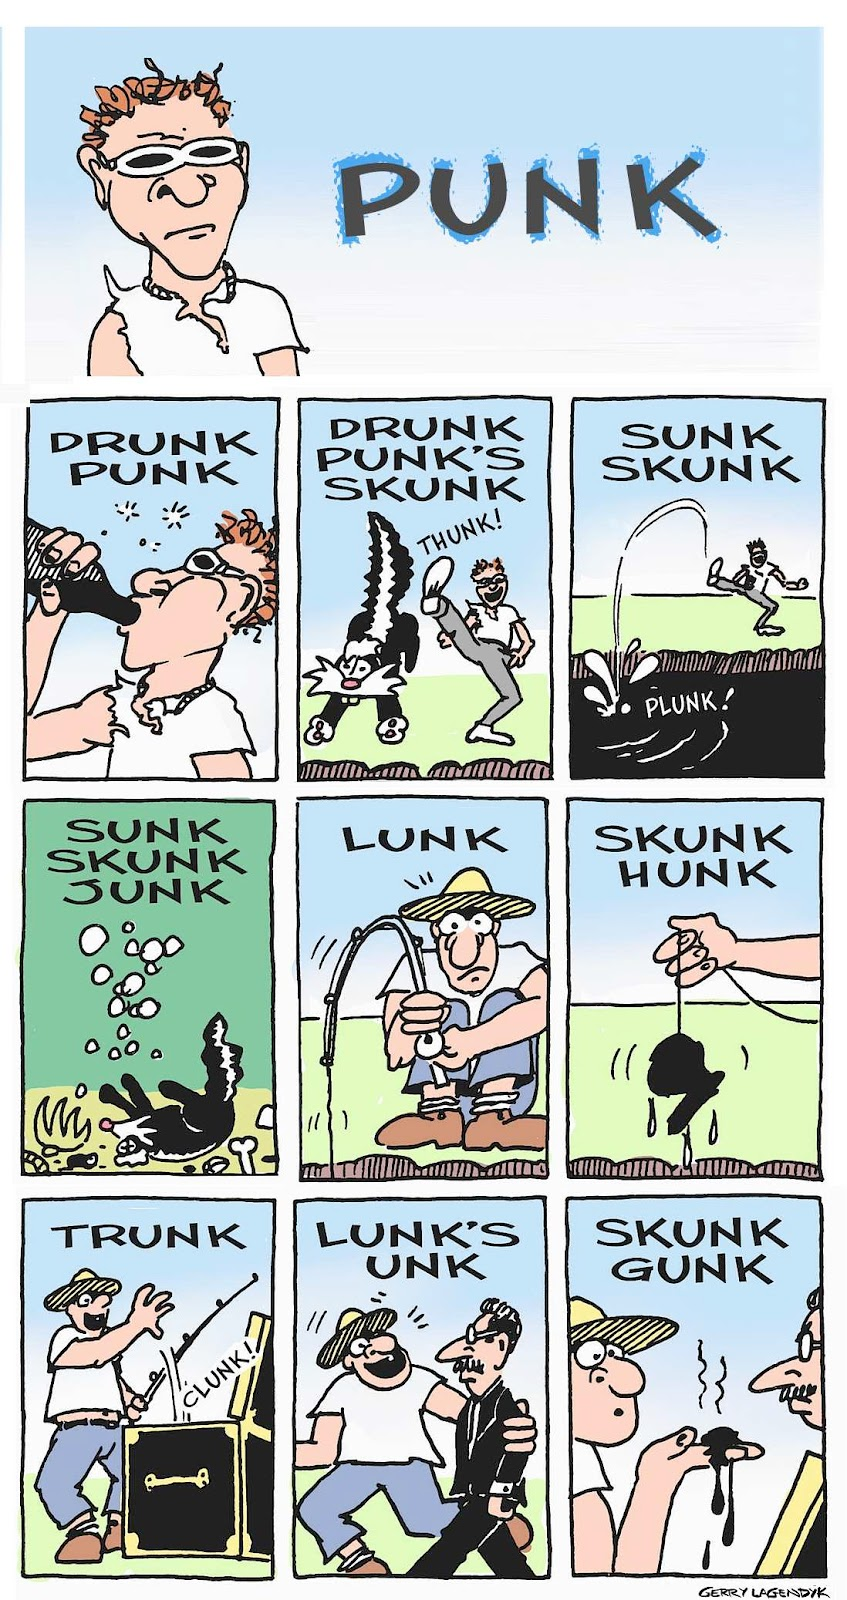 Drunk Punk's Skunk, cartoon by Gerry Lagendyk